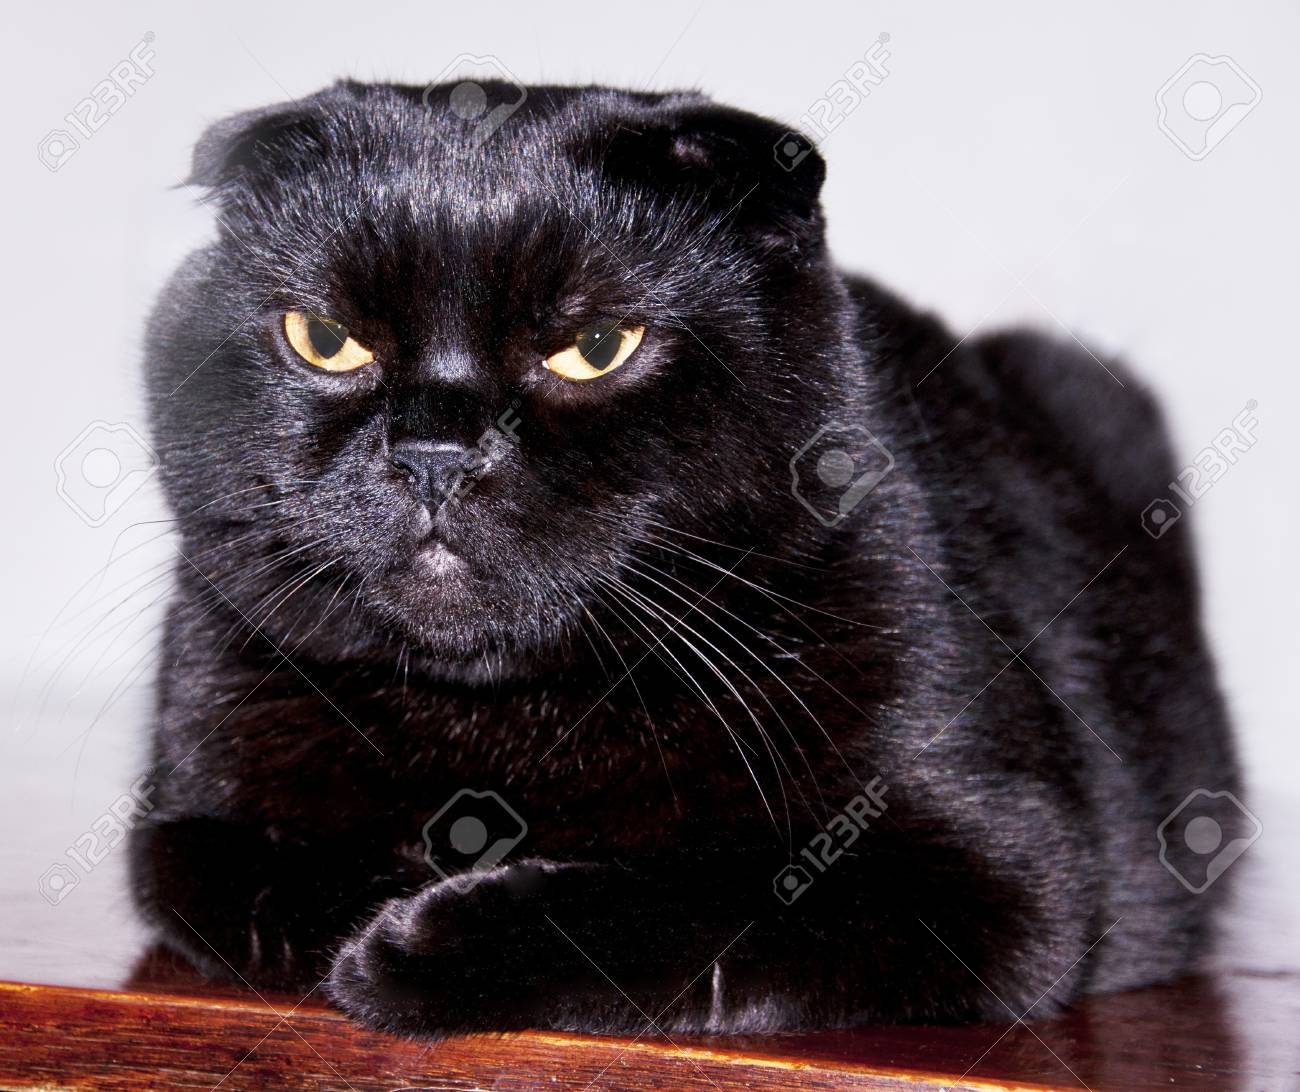 Black Cat With Small Ears Scottish Fold